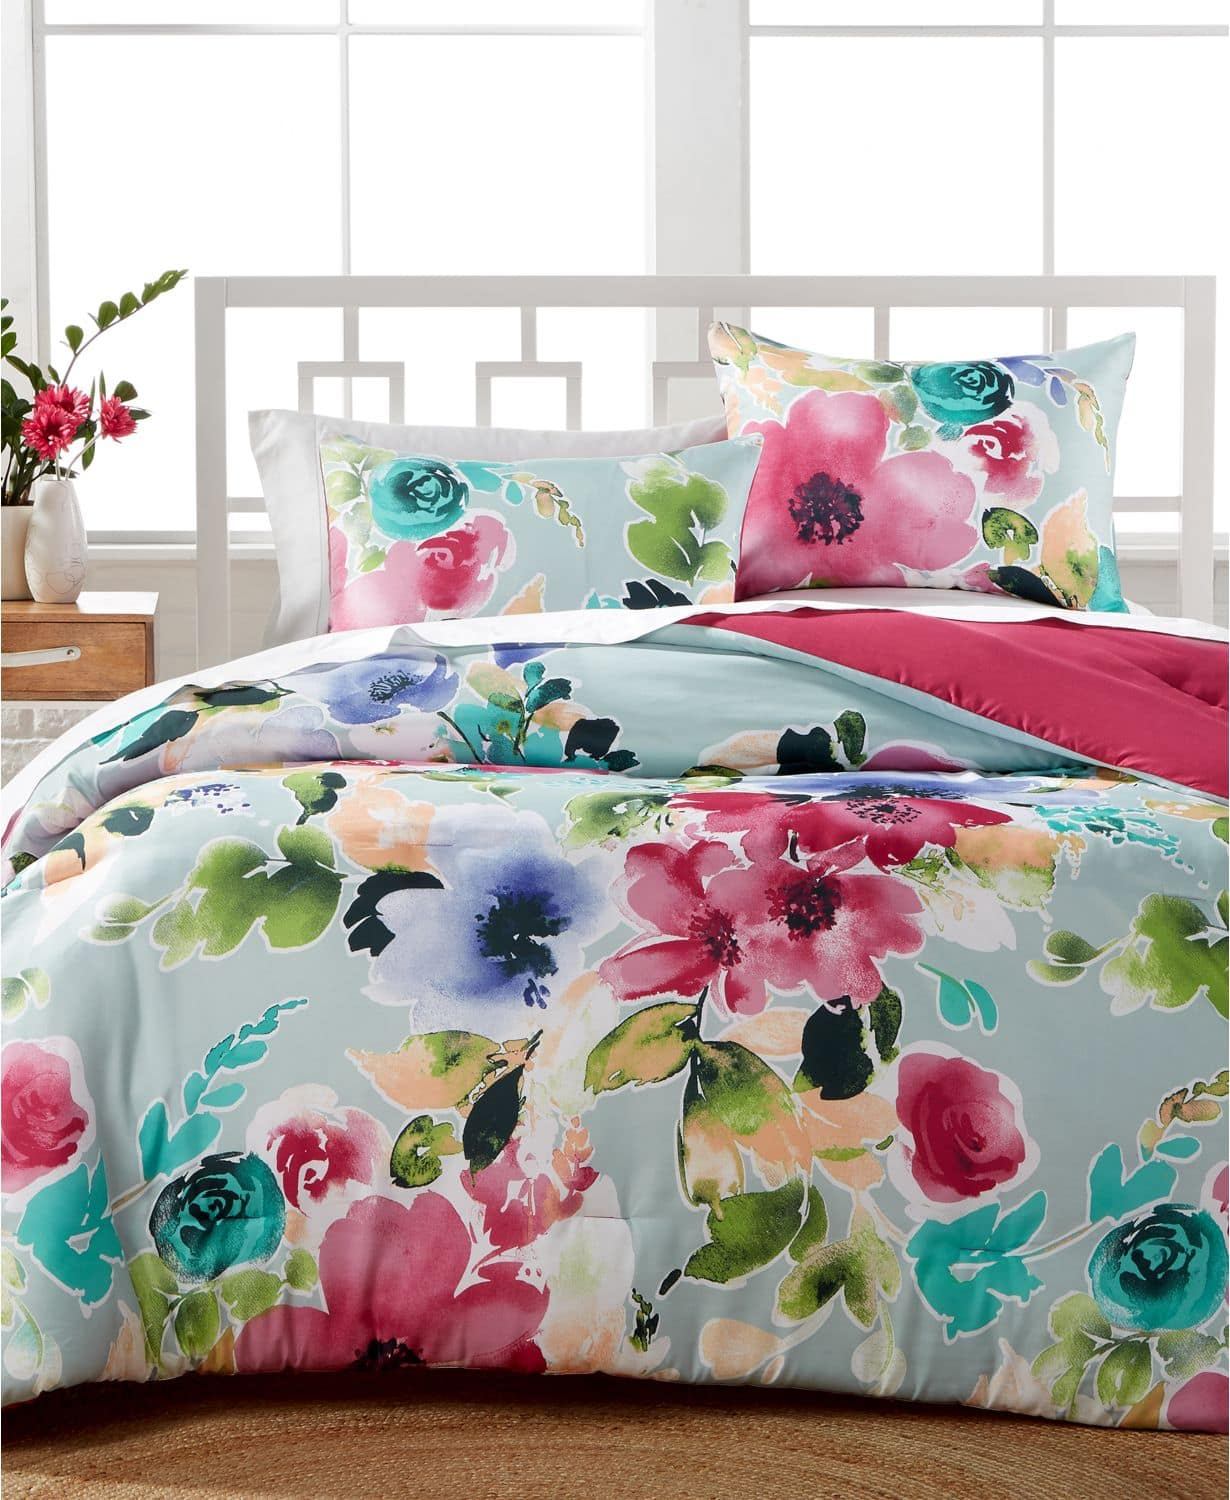 3-pc. Reversible Comforter Sets  - ALL Sizes - Multiple Colors/Patterns - $19.99 at Macys